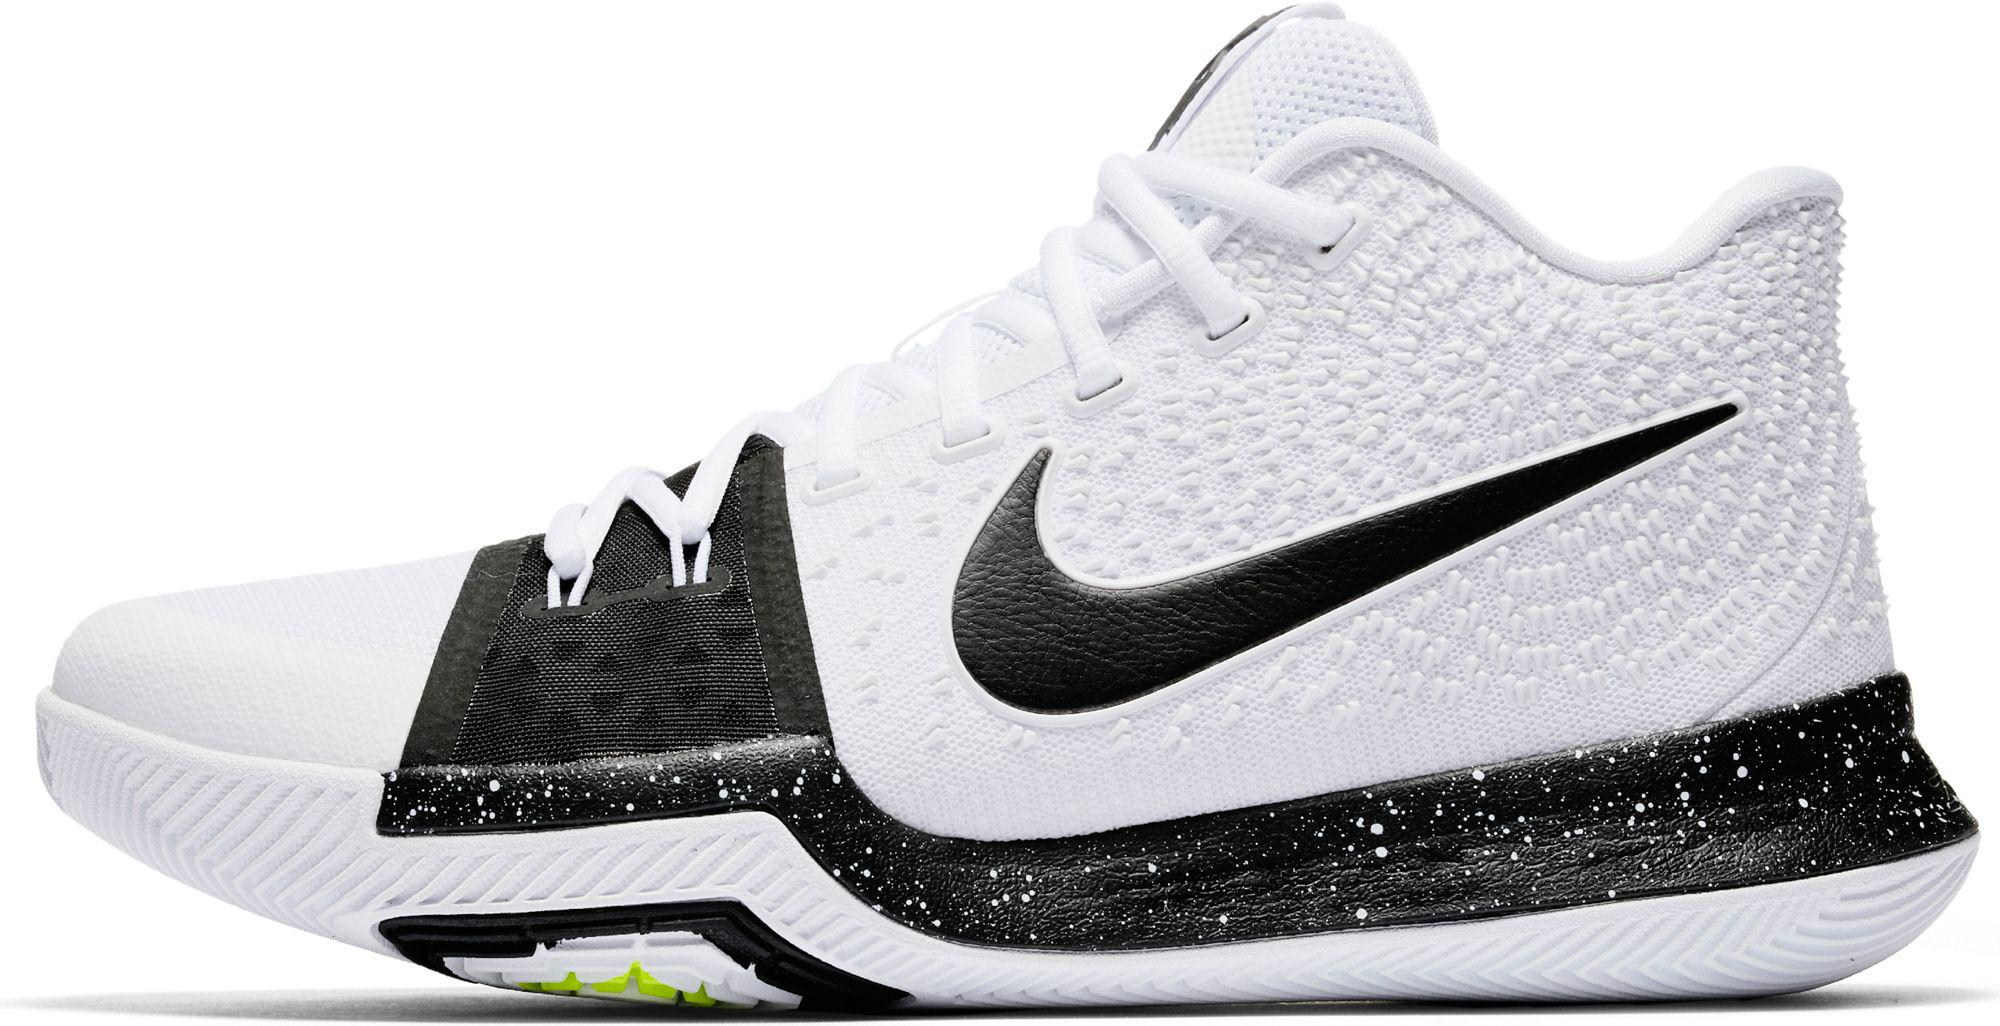 Nike - White Kyrie 3 Tb Basketball Shoes for Men - Lyst. View Fullscreen